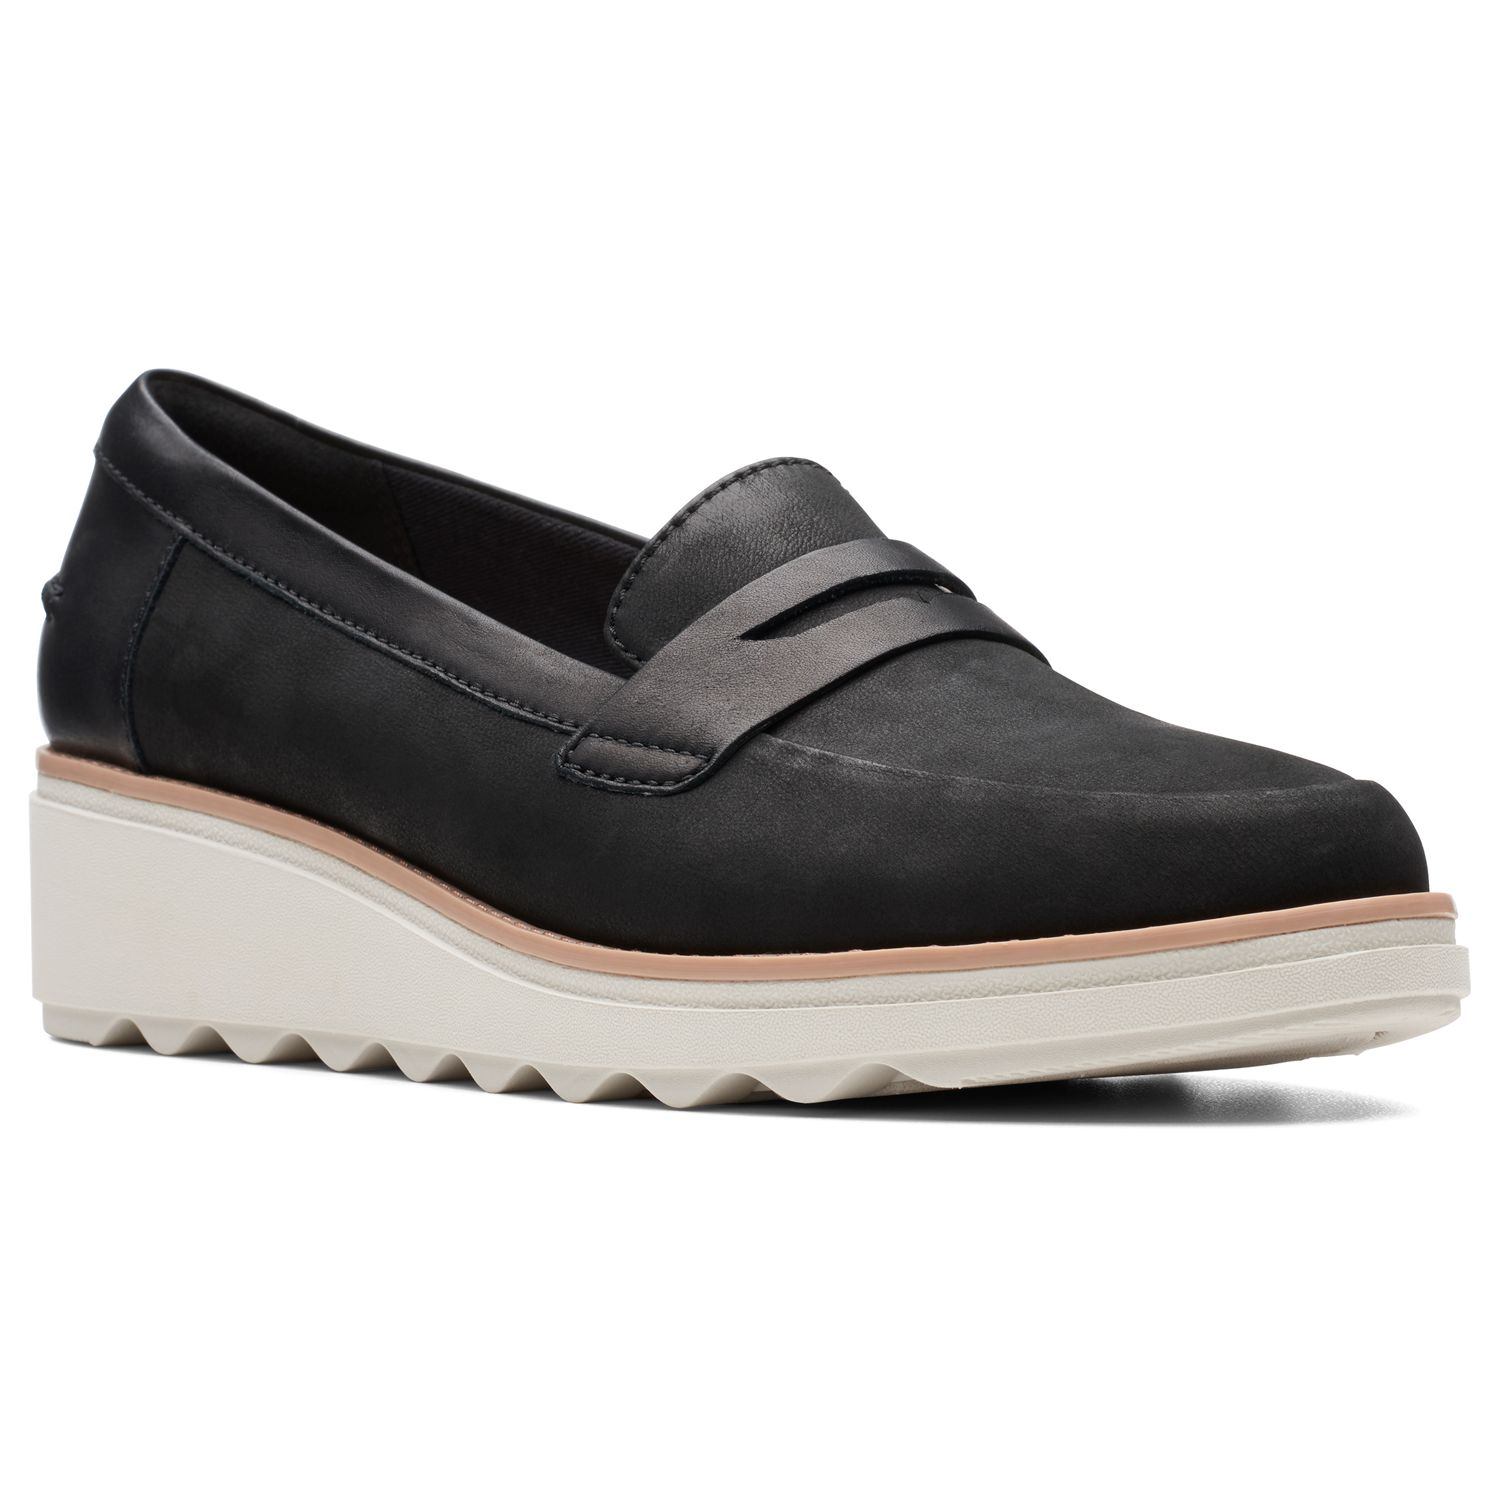 b9a2c79d386b8 Clarks Sharon Ranch Women's Loafers